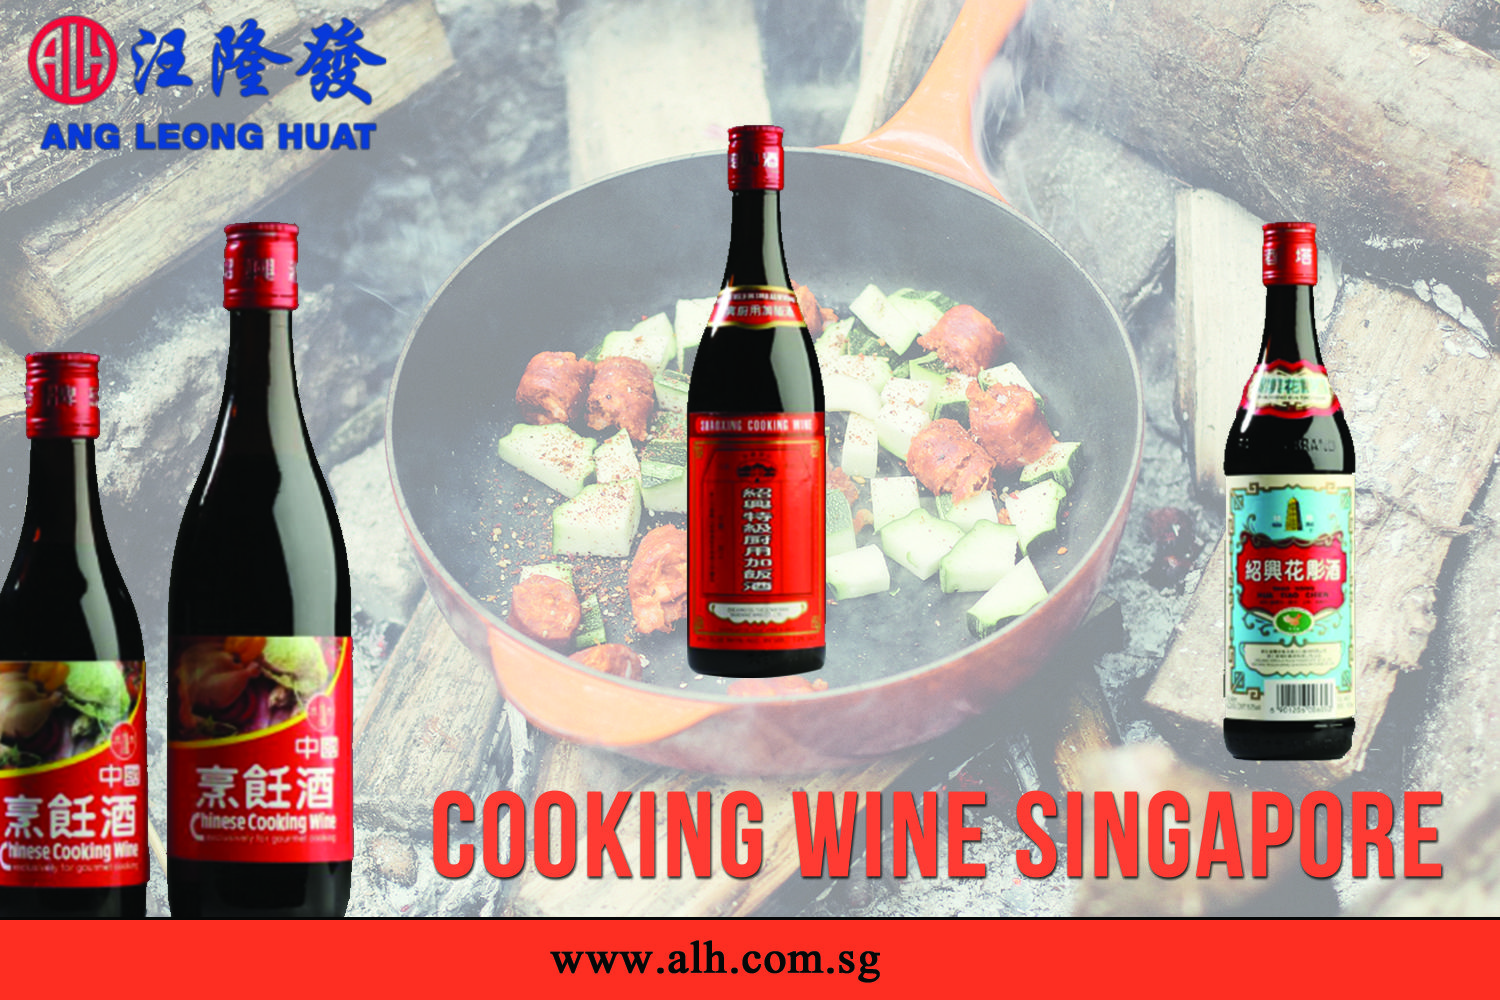 Branded Cooking Wine Singapore For Sale Online Alh Cooking Wine Wine Brands Cooking